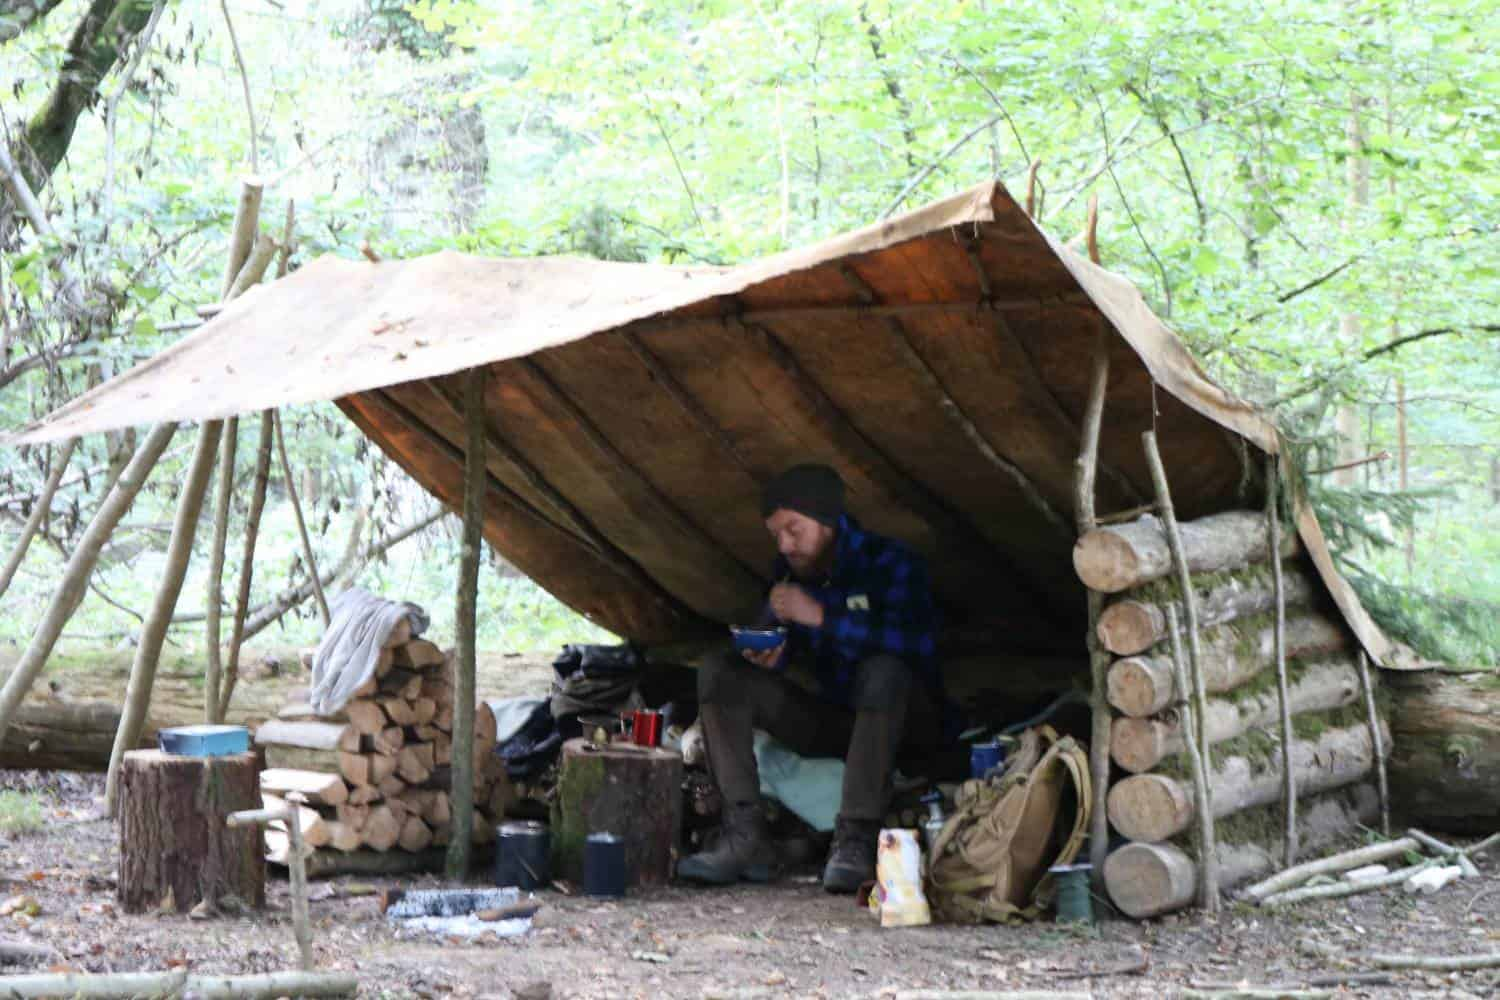 Basics of shelter building